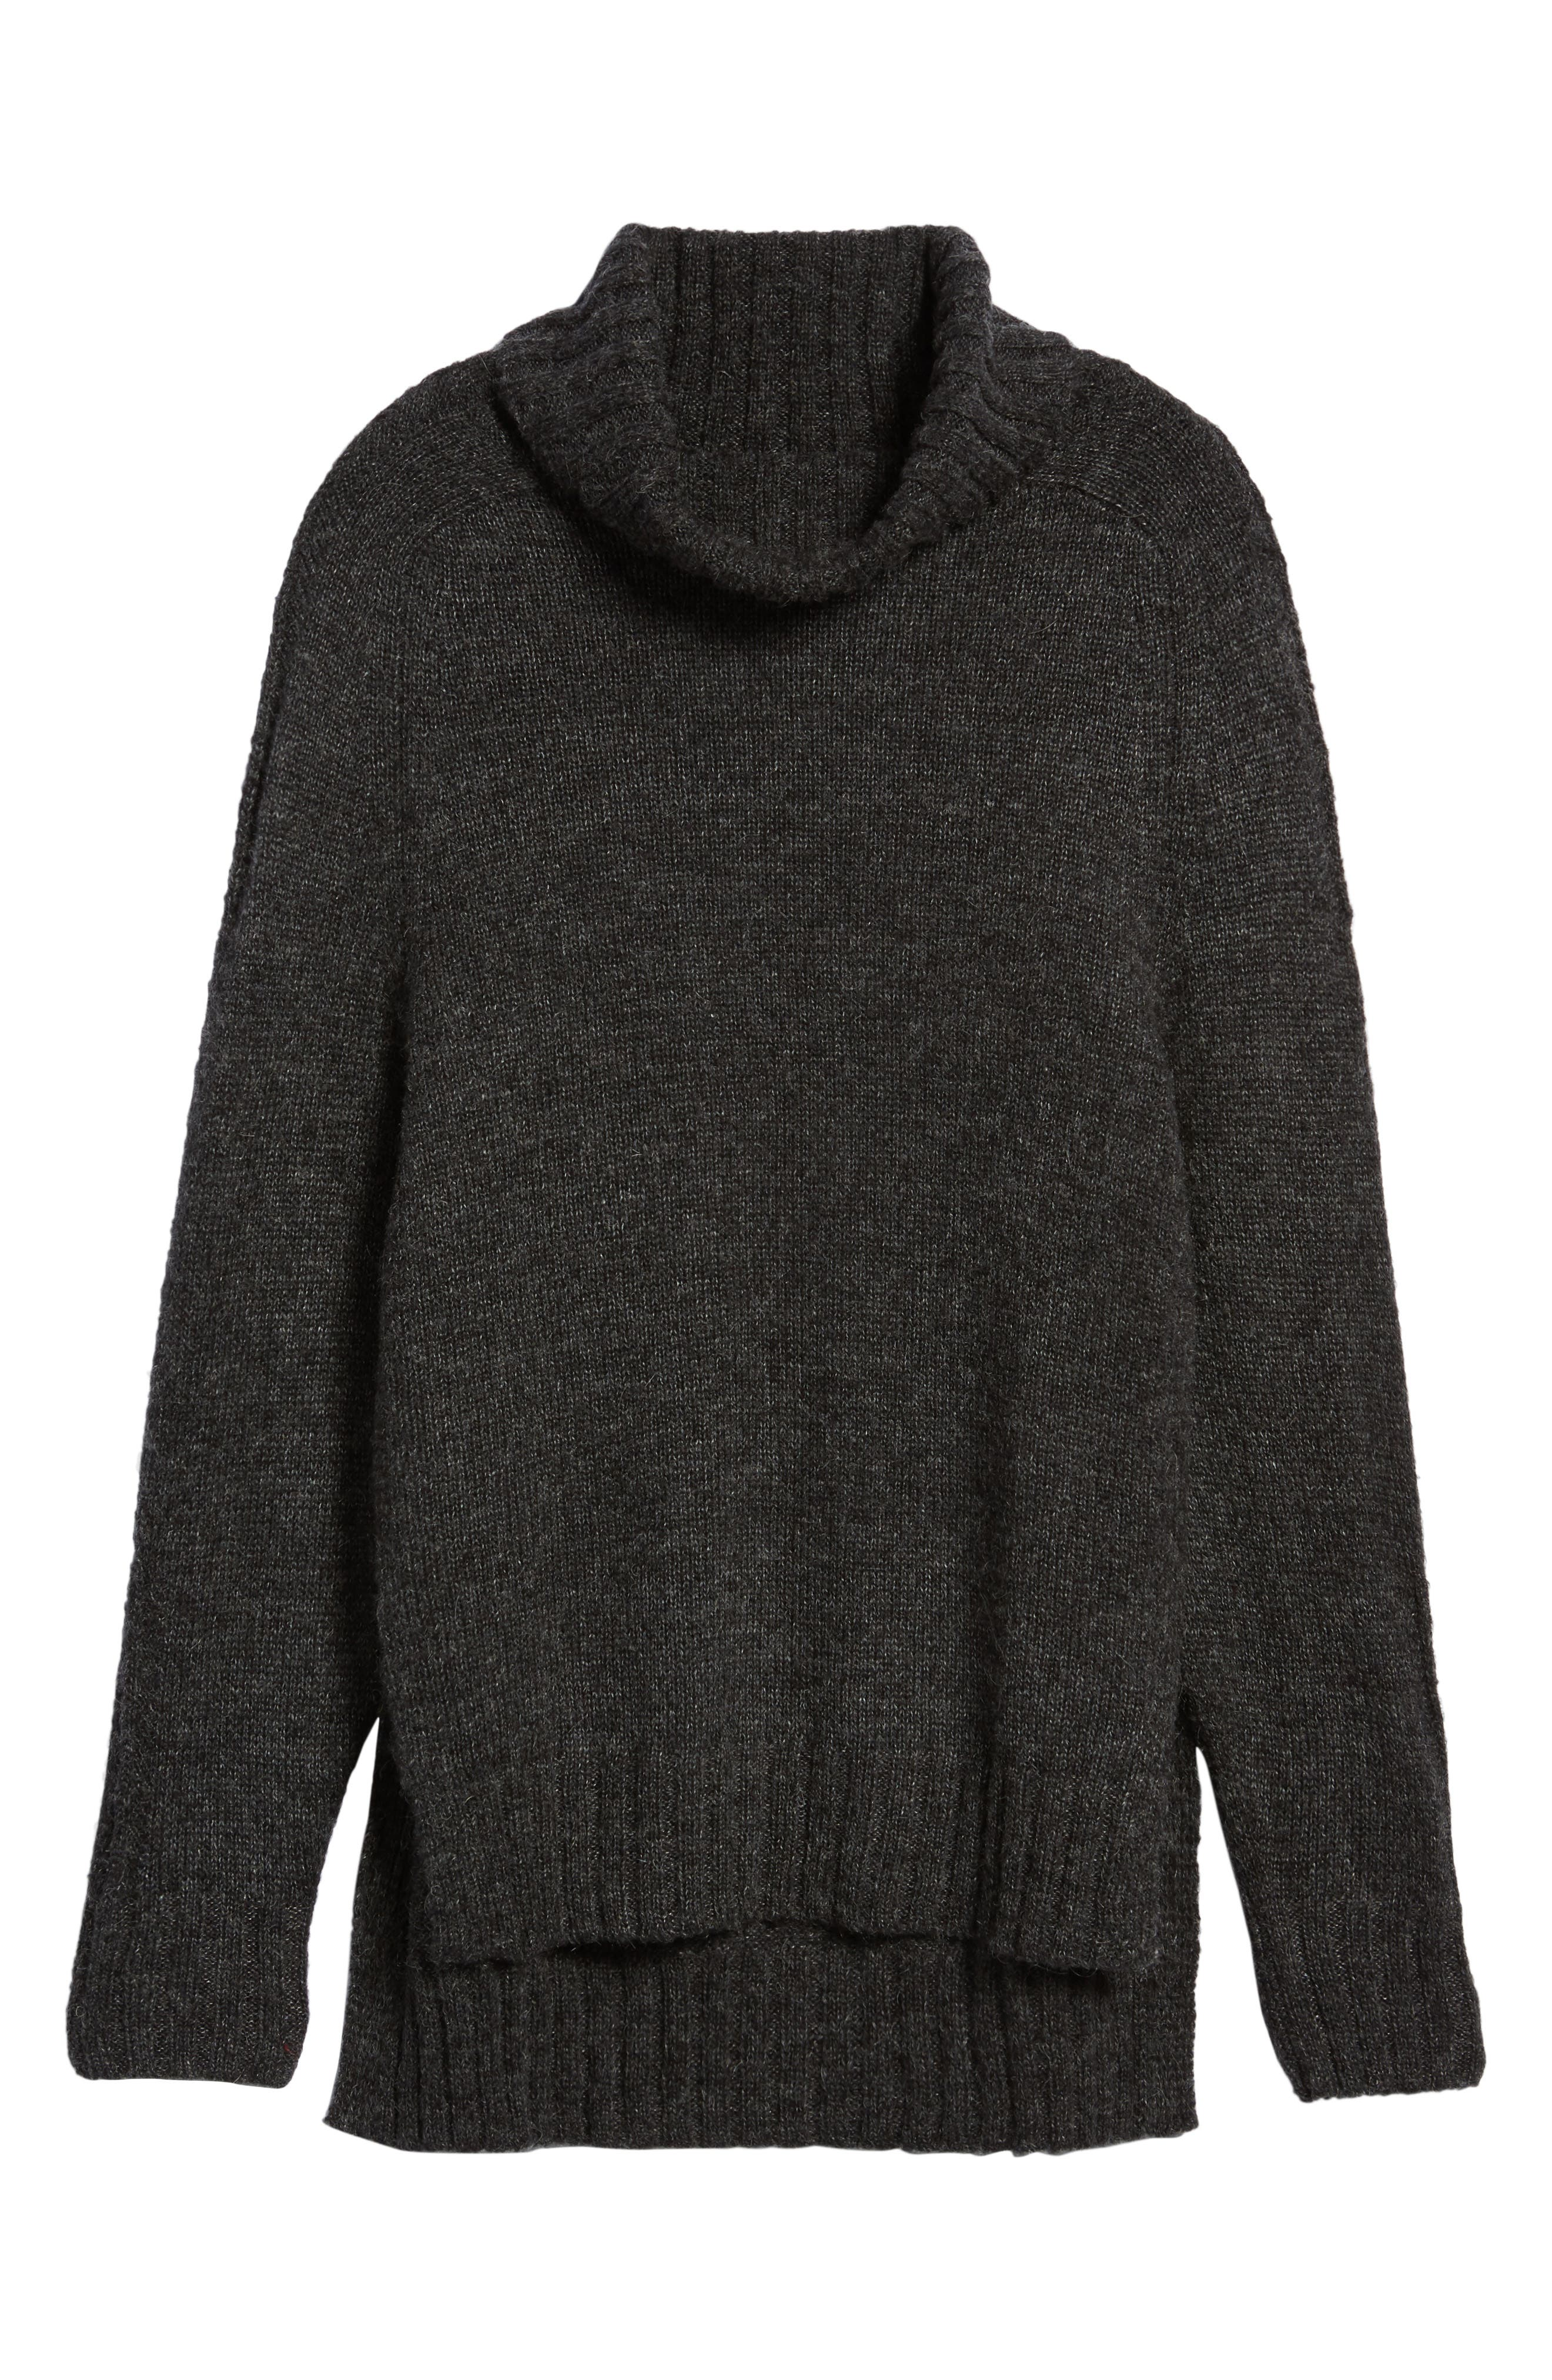 Stacy Turtleneck Sweater,                             Alternate thumbnail 6, color,                             020